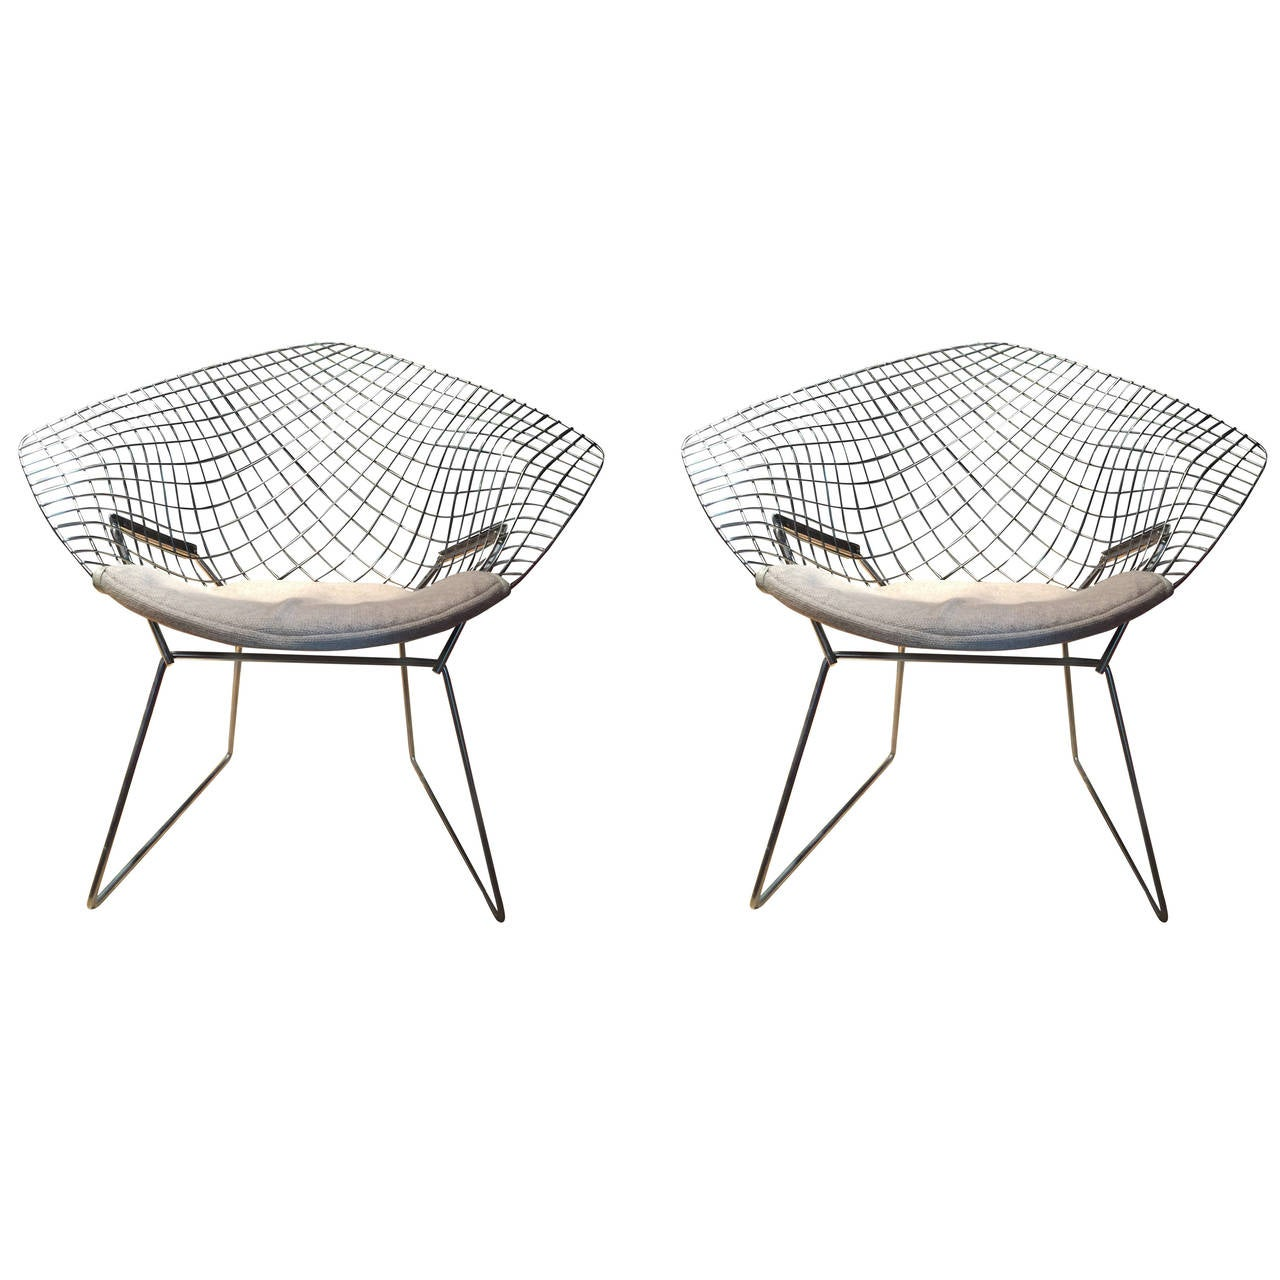 Bertoia diamond chair vintage - Pair Of 1979 Vintage Chrome Diamond Chair By Harry Bertoia For Knoll 1